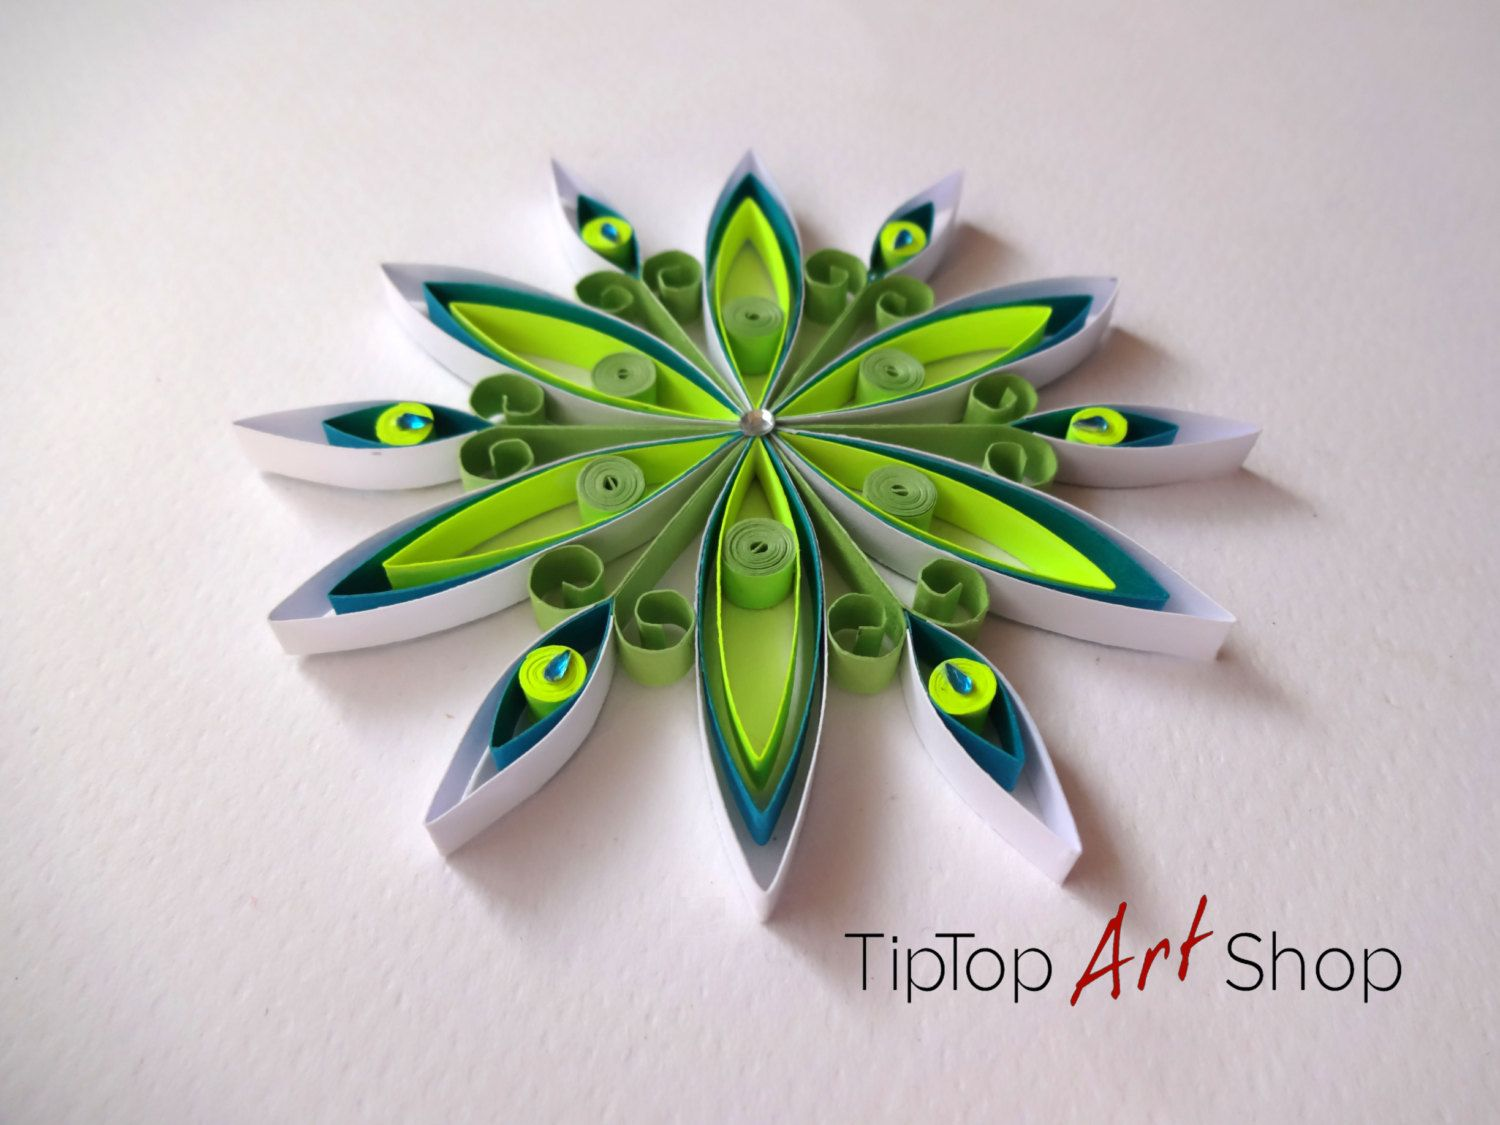 Paper Quilling Snowflake Ornament for Your Christmas Decoration; Neon Yellow, Green, Blue, White;Gift Packaged; by TipTopArtShop on Etsy https://www.etsy.com/listing/207849563/paper-quilling-snowflake-ornament-for